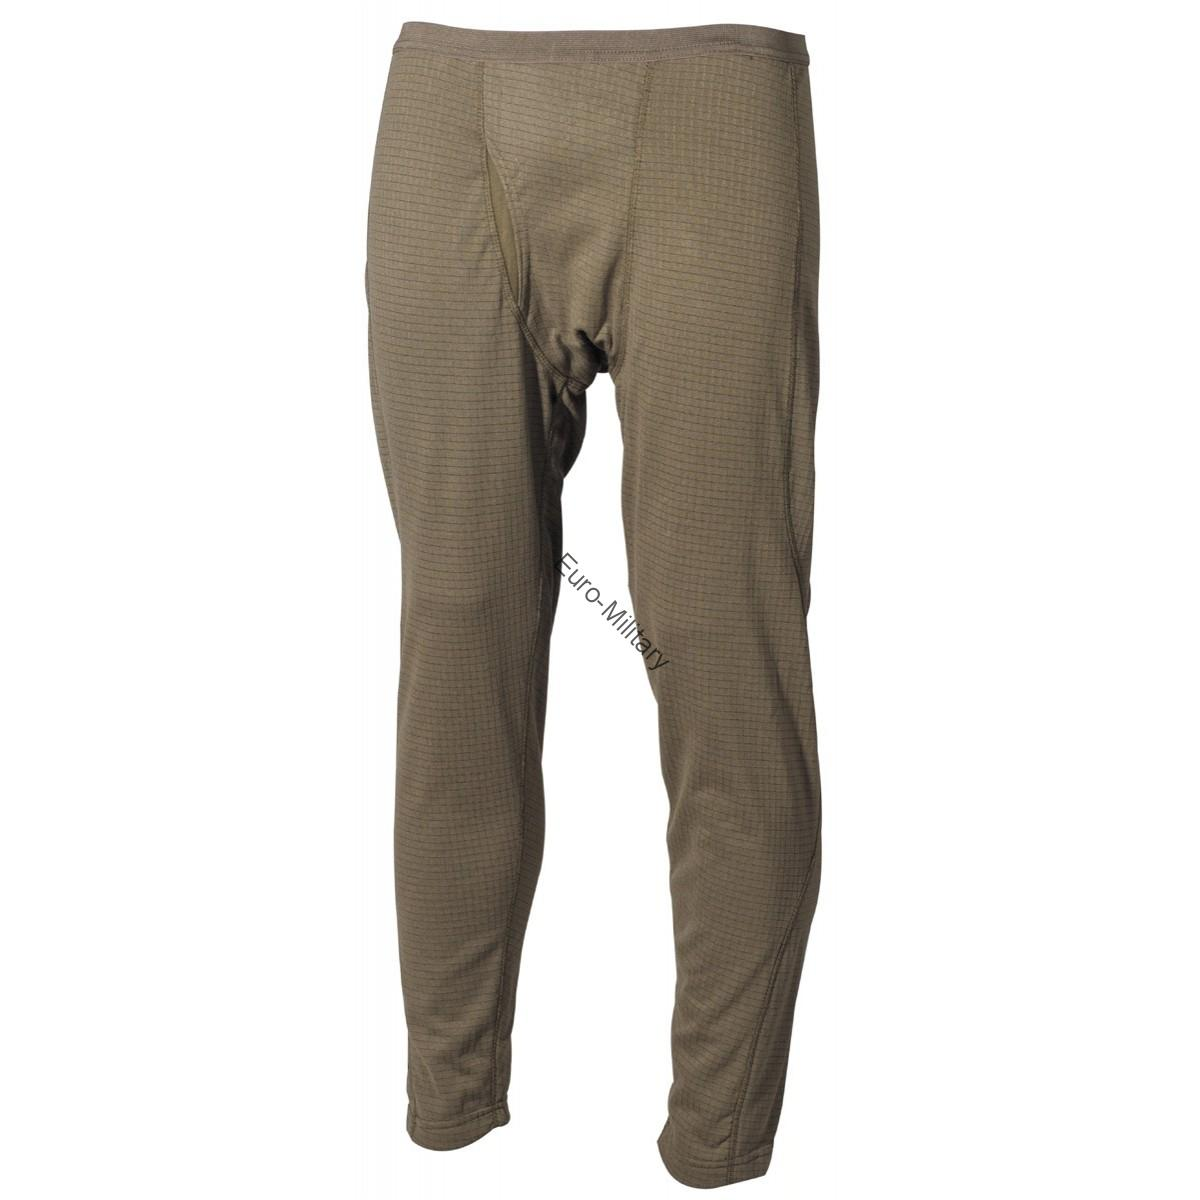 Military/Outdoor Underpants Level 2 Gen.3 Breathable Moisture Control - OD Green